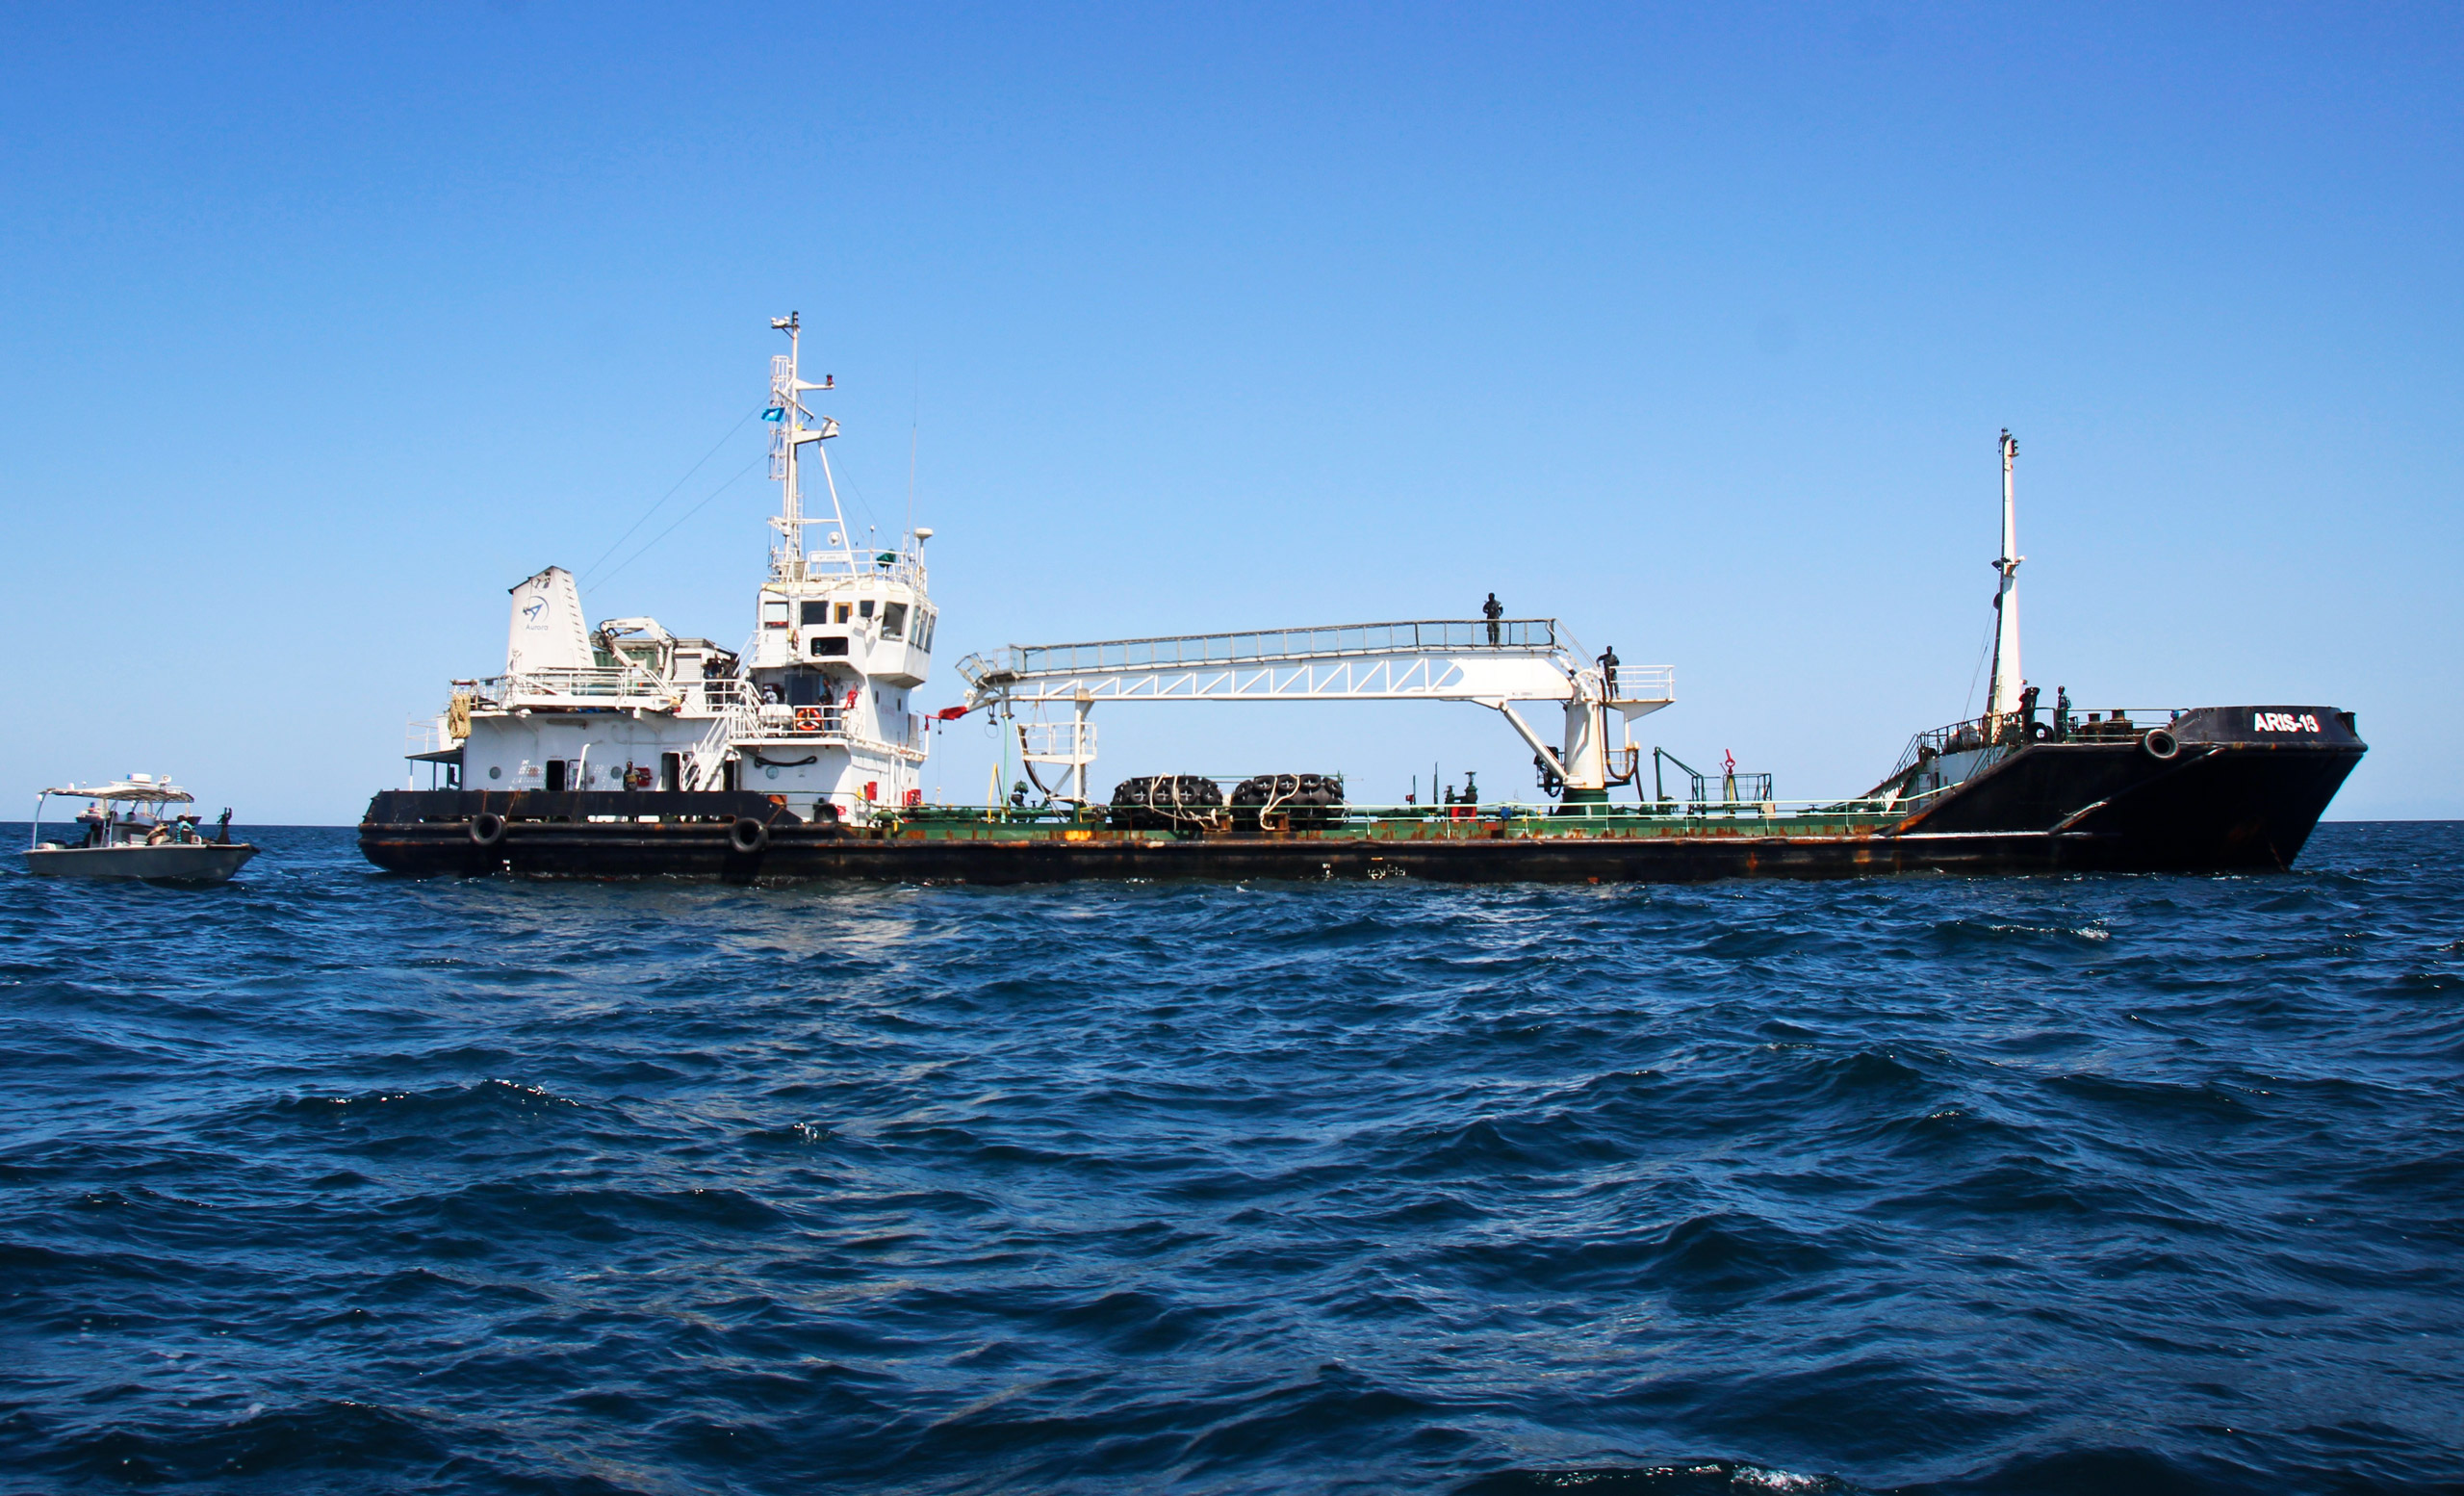 The Aris13 was hijacked off Somalia in March